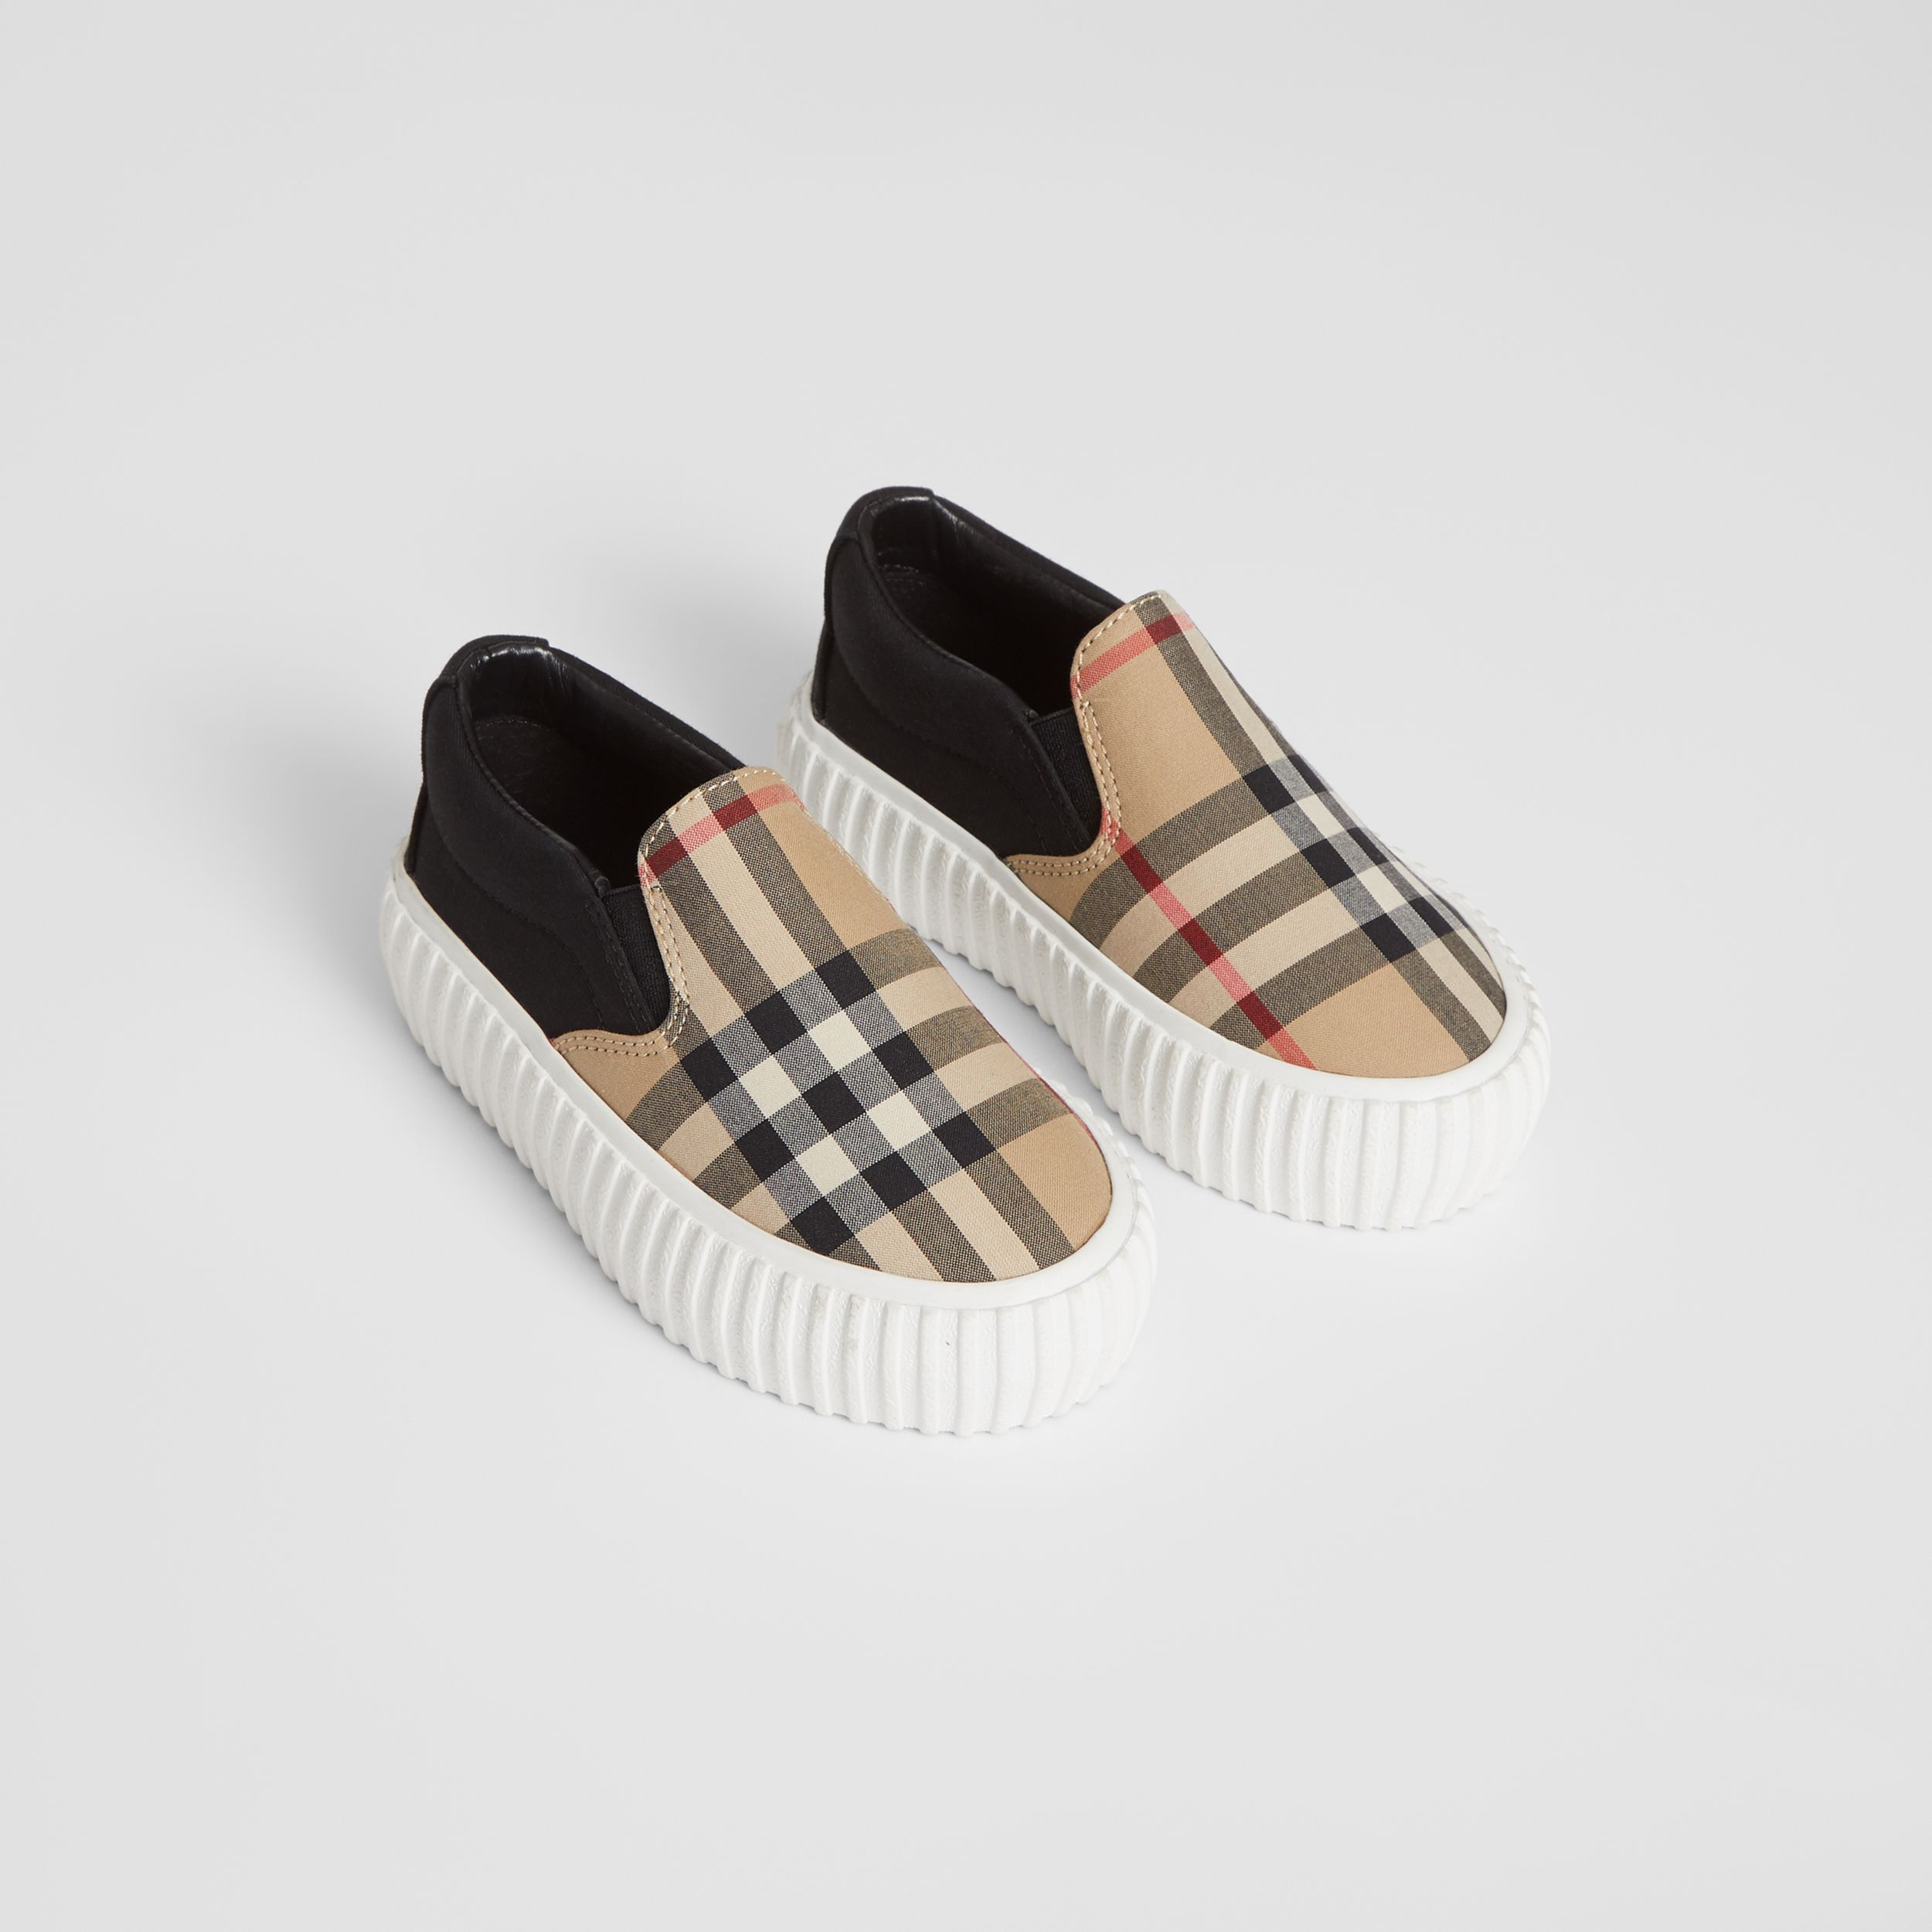 Vintage Check Detail Cotton Slip-on Sneakers in Archive Beige/black - Children | Burberry United Kingdom - 1